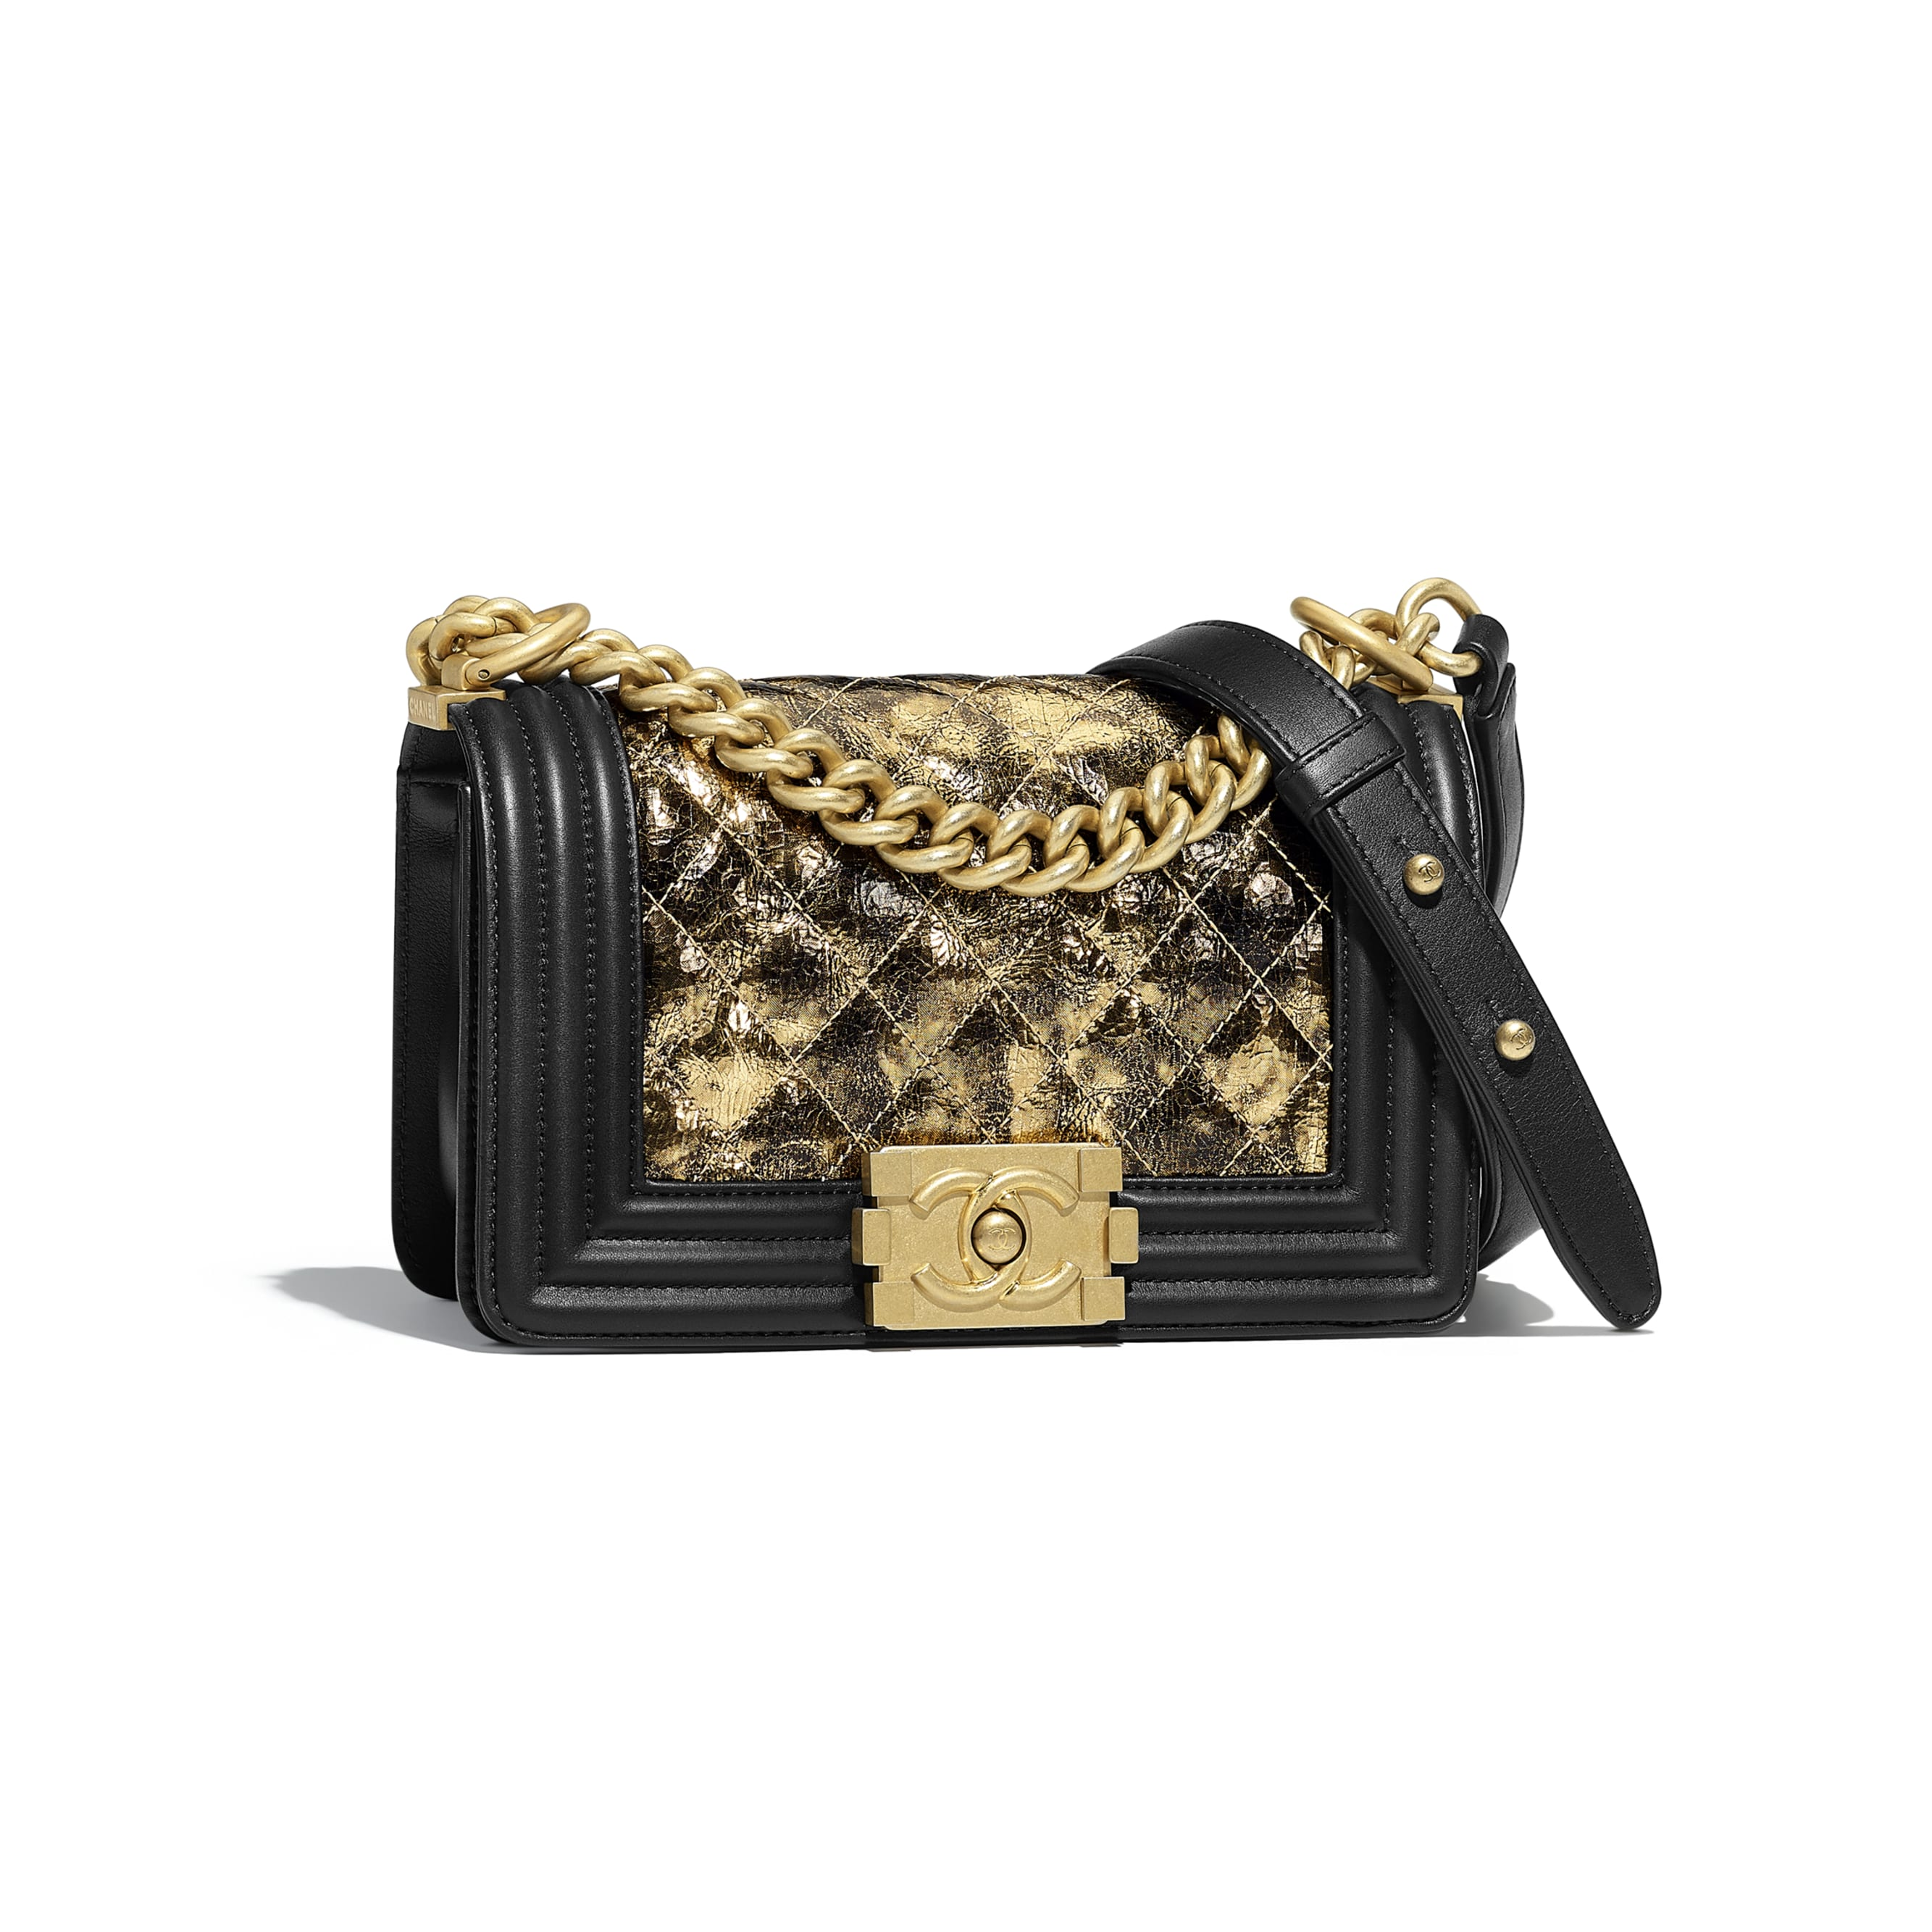 3a462f32dfba6 Small boy chanel handbag gold black metallic crumpled goatskin calfskin gold  jpg 2667x2667 Chanel satchel handbag